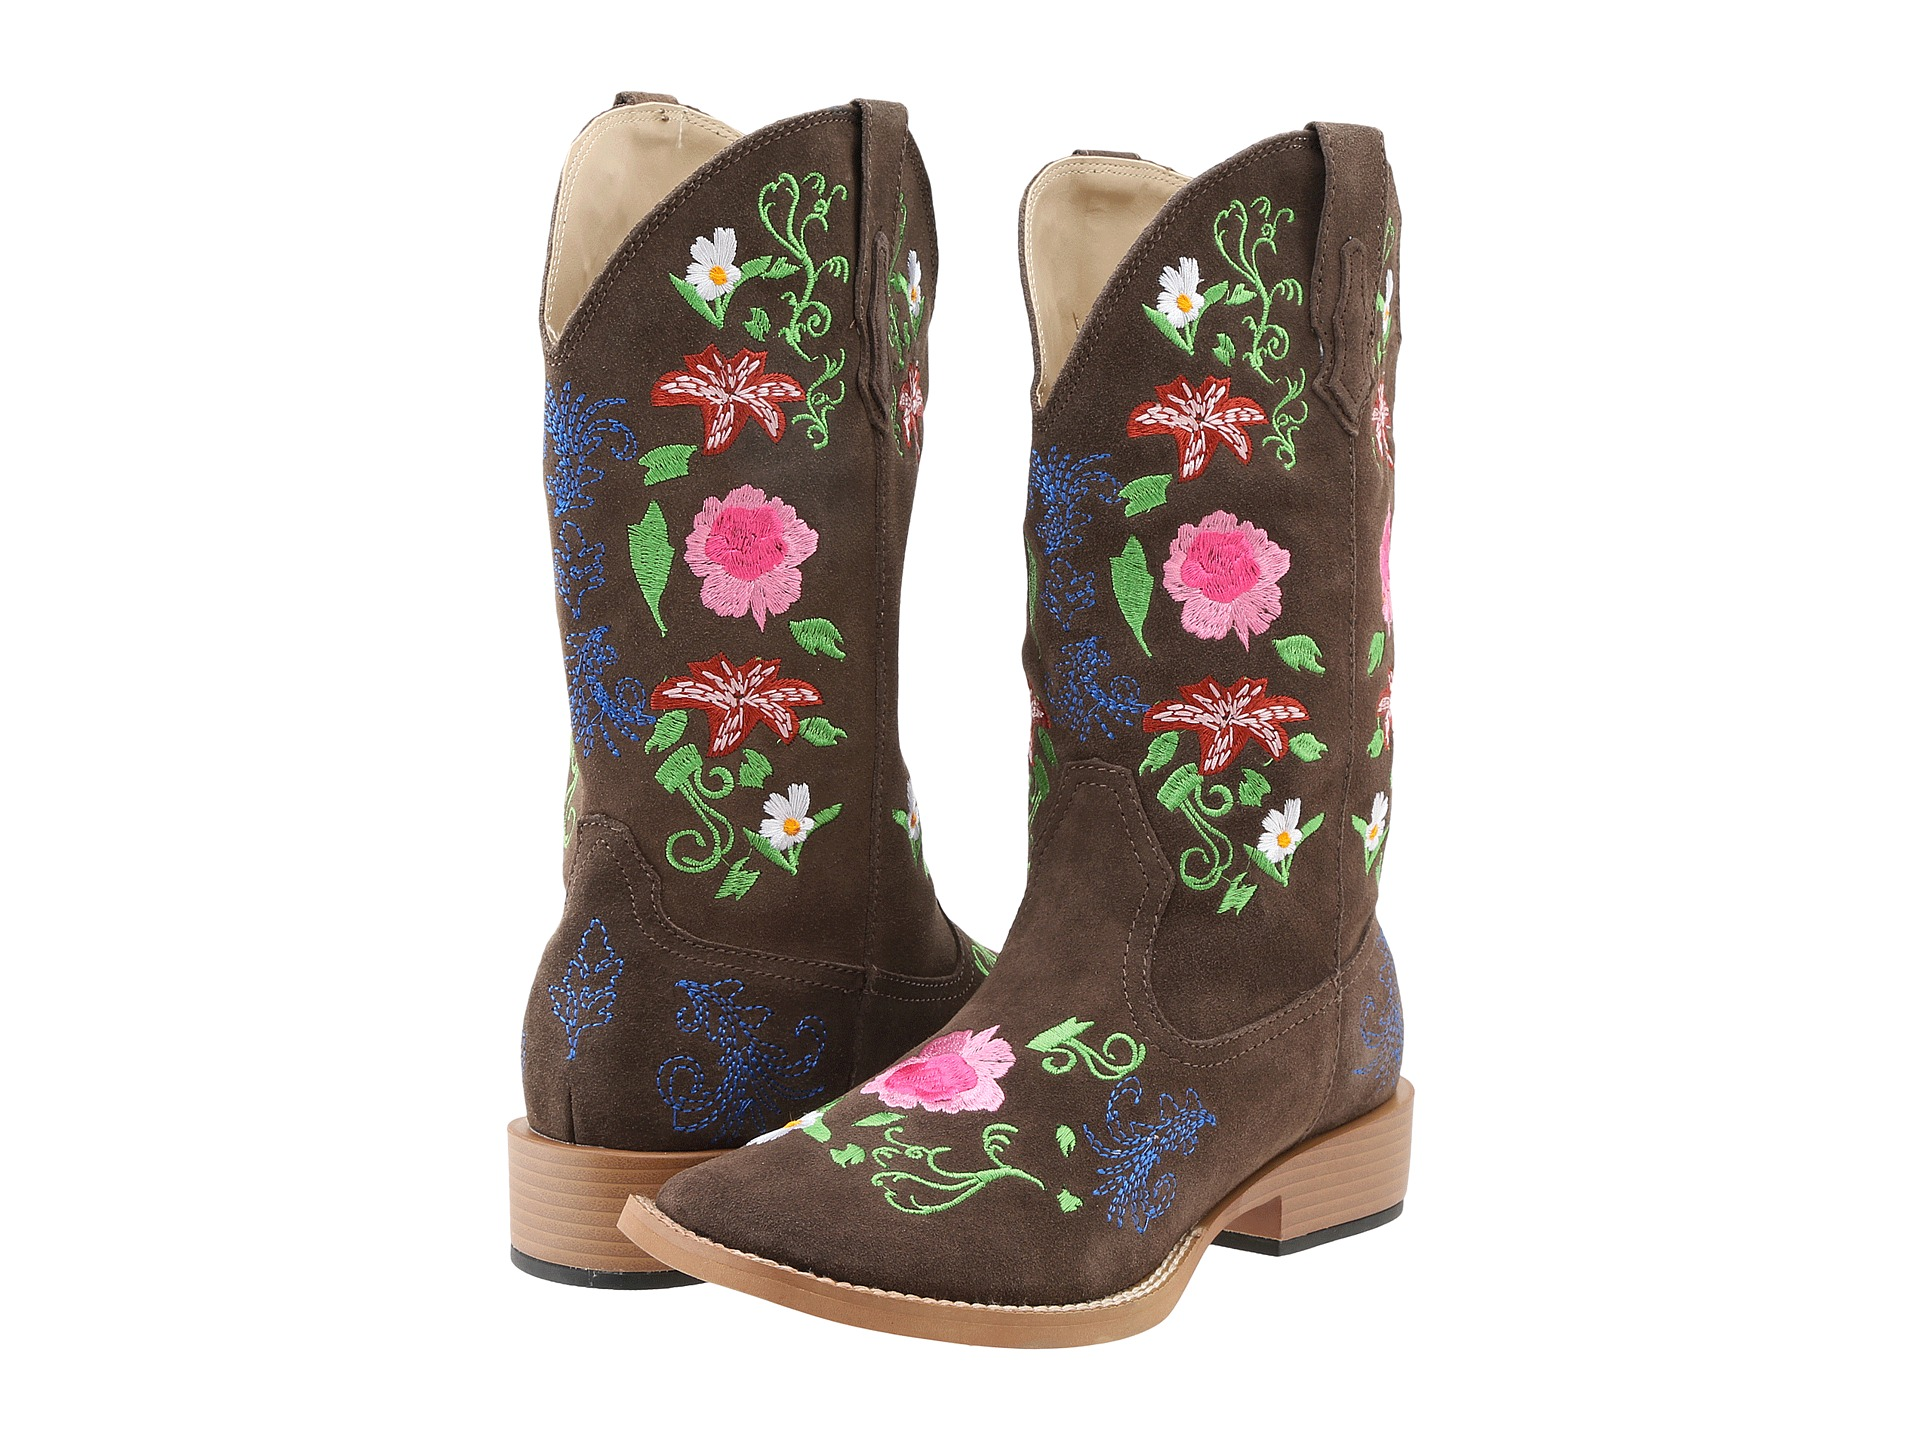 roper multi floral embroidered suede boot shipped free